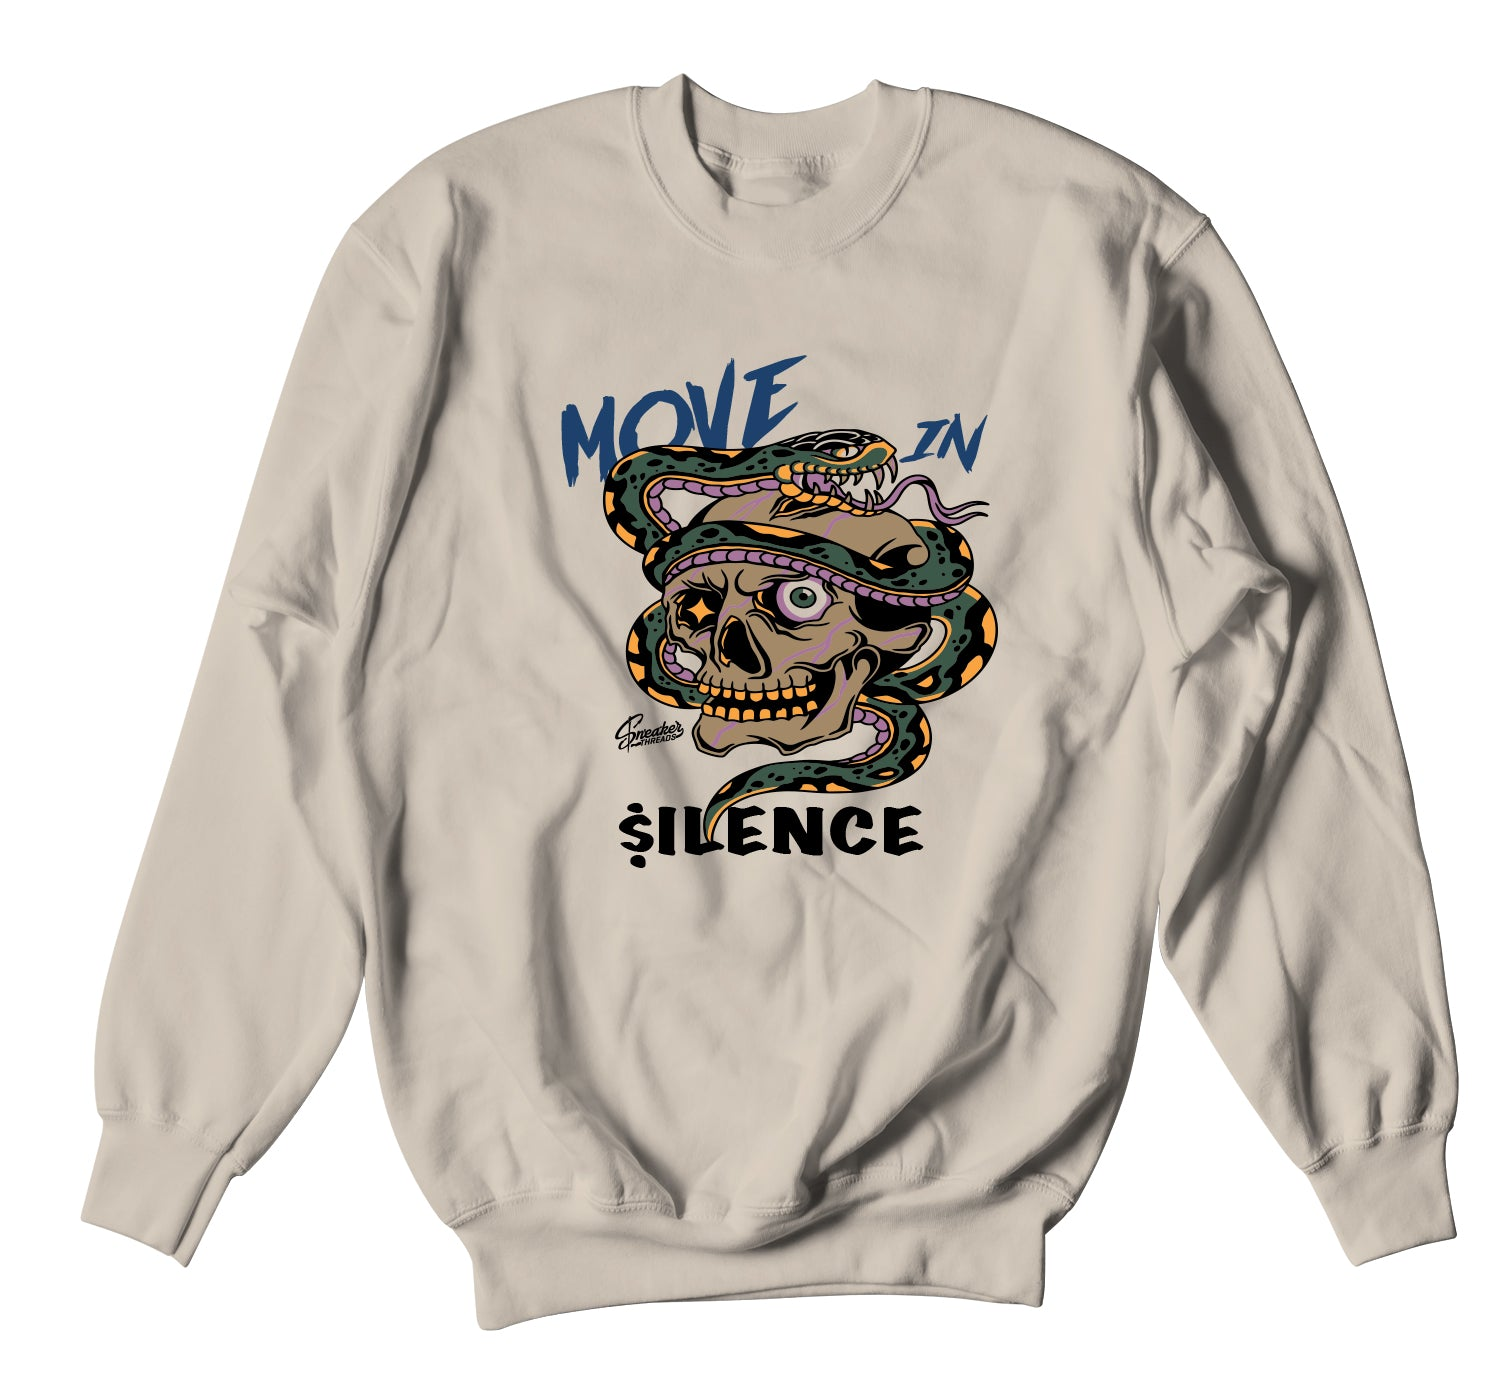 Air Force 1 Travis Scott Sweater - Move In Silence - Sand